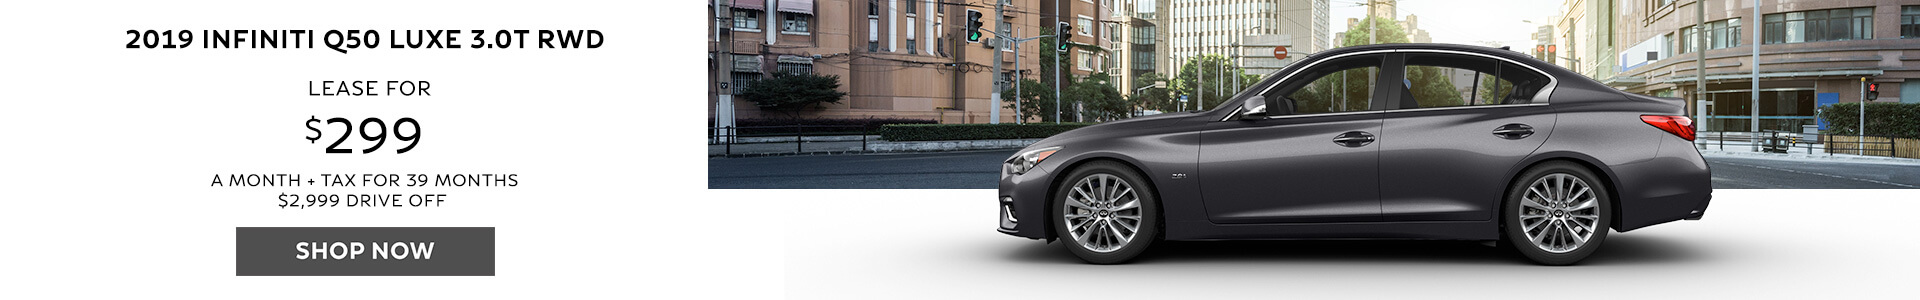 Q50 -  Lease for $299